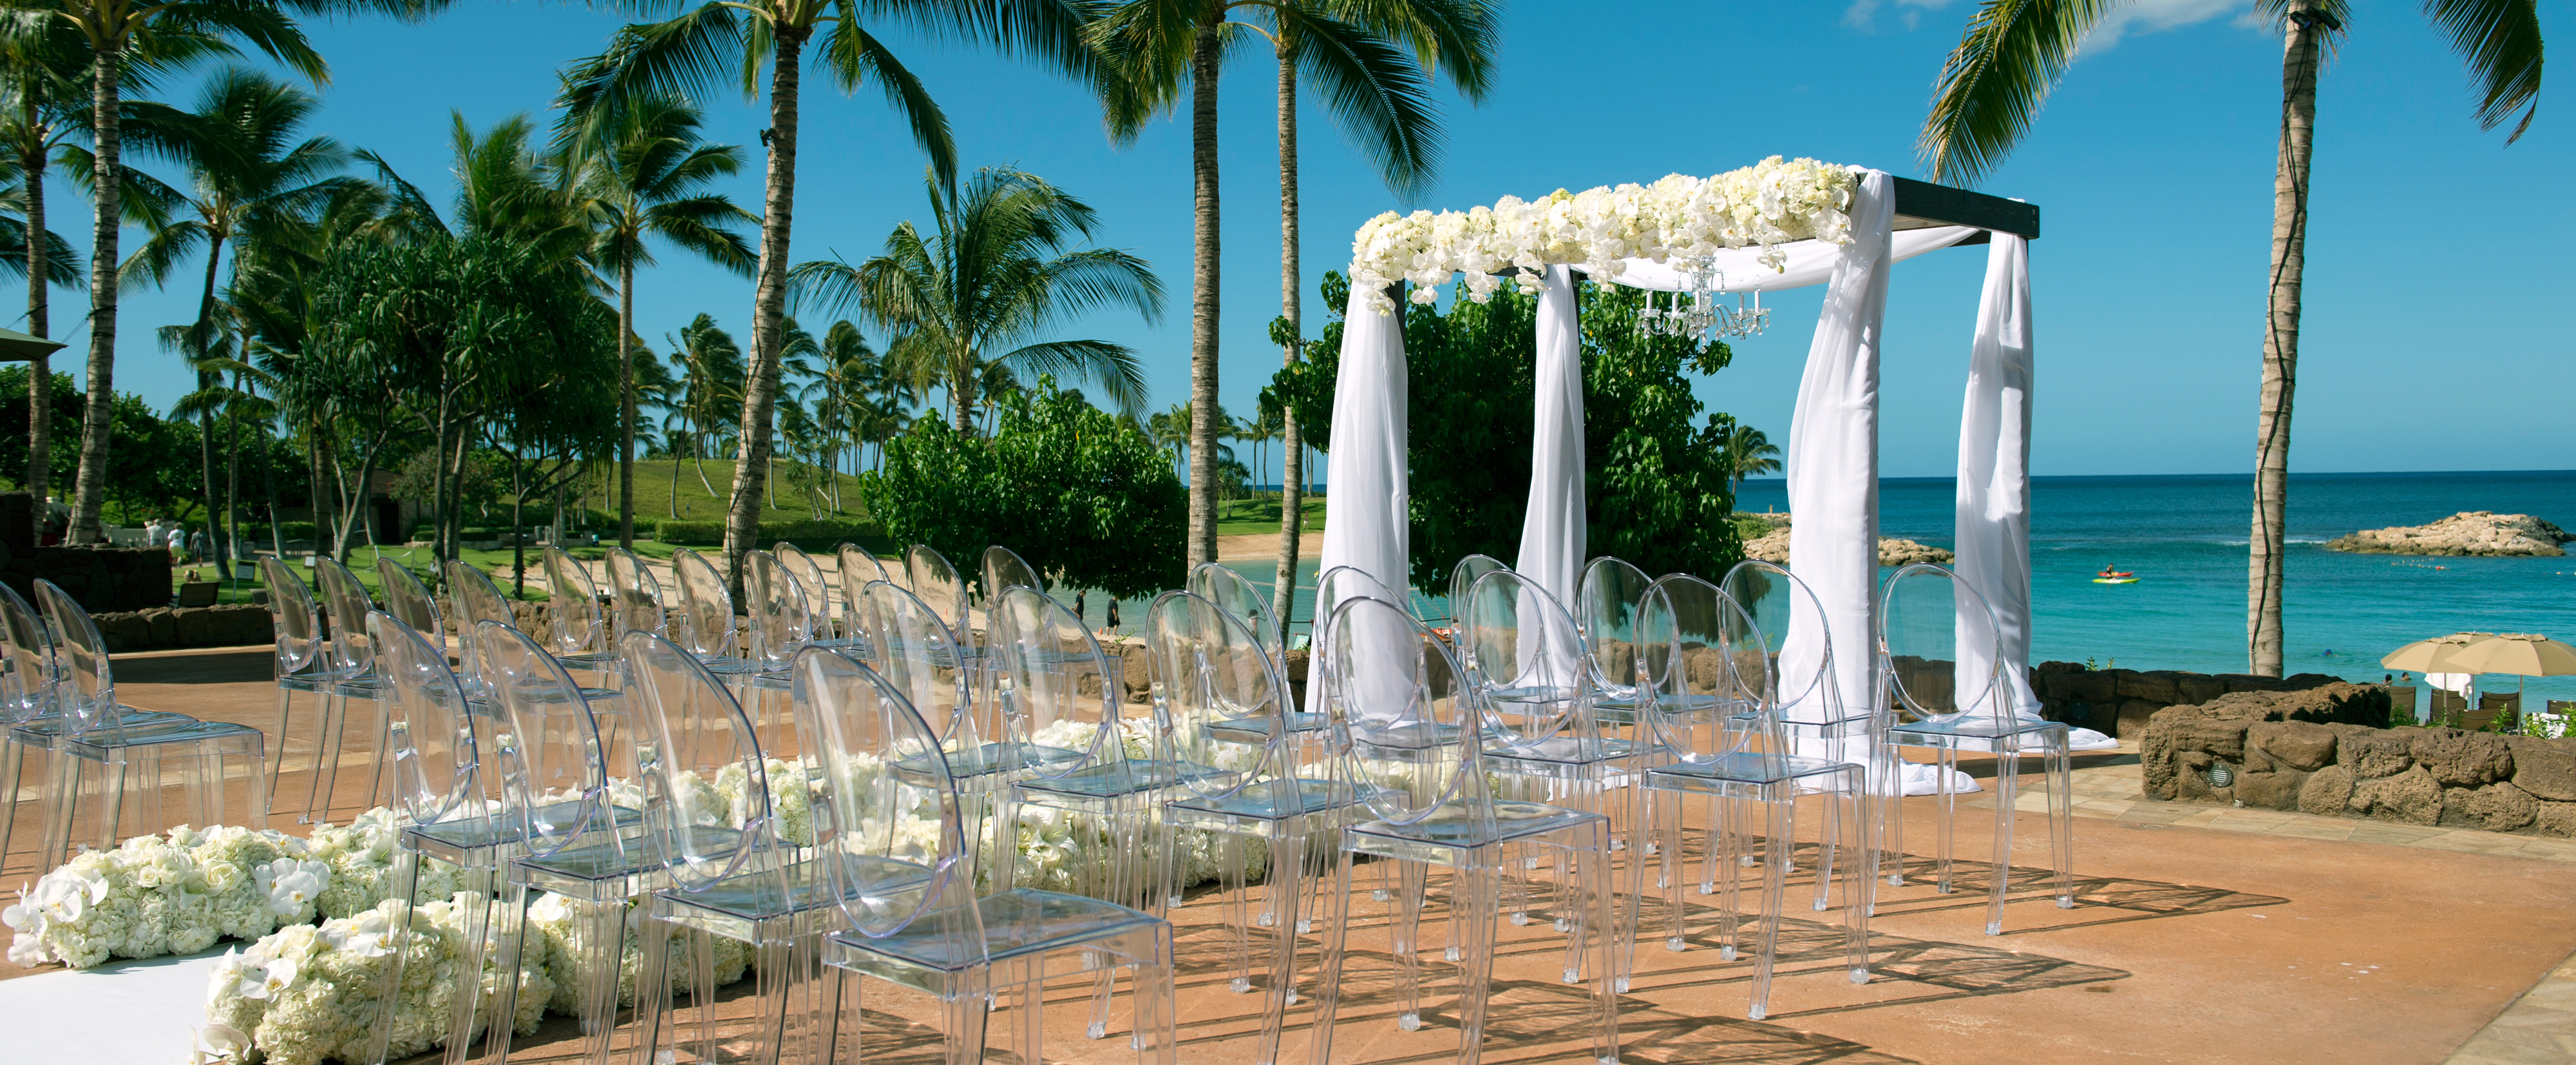 Rows of transparent chairs line an aisle leading to a seaside altar draped in white fabric and flowers